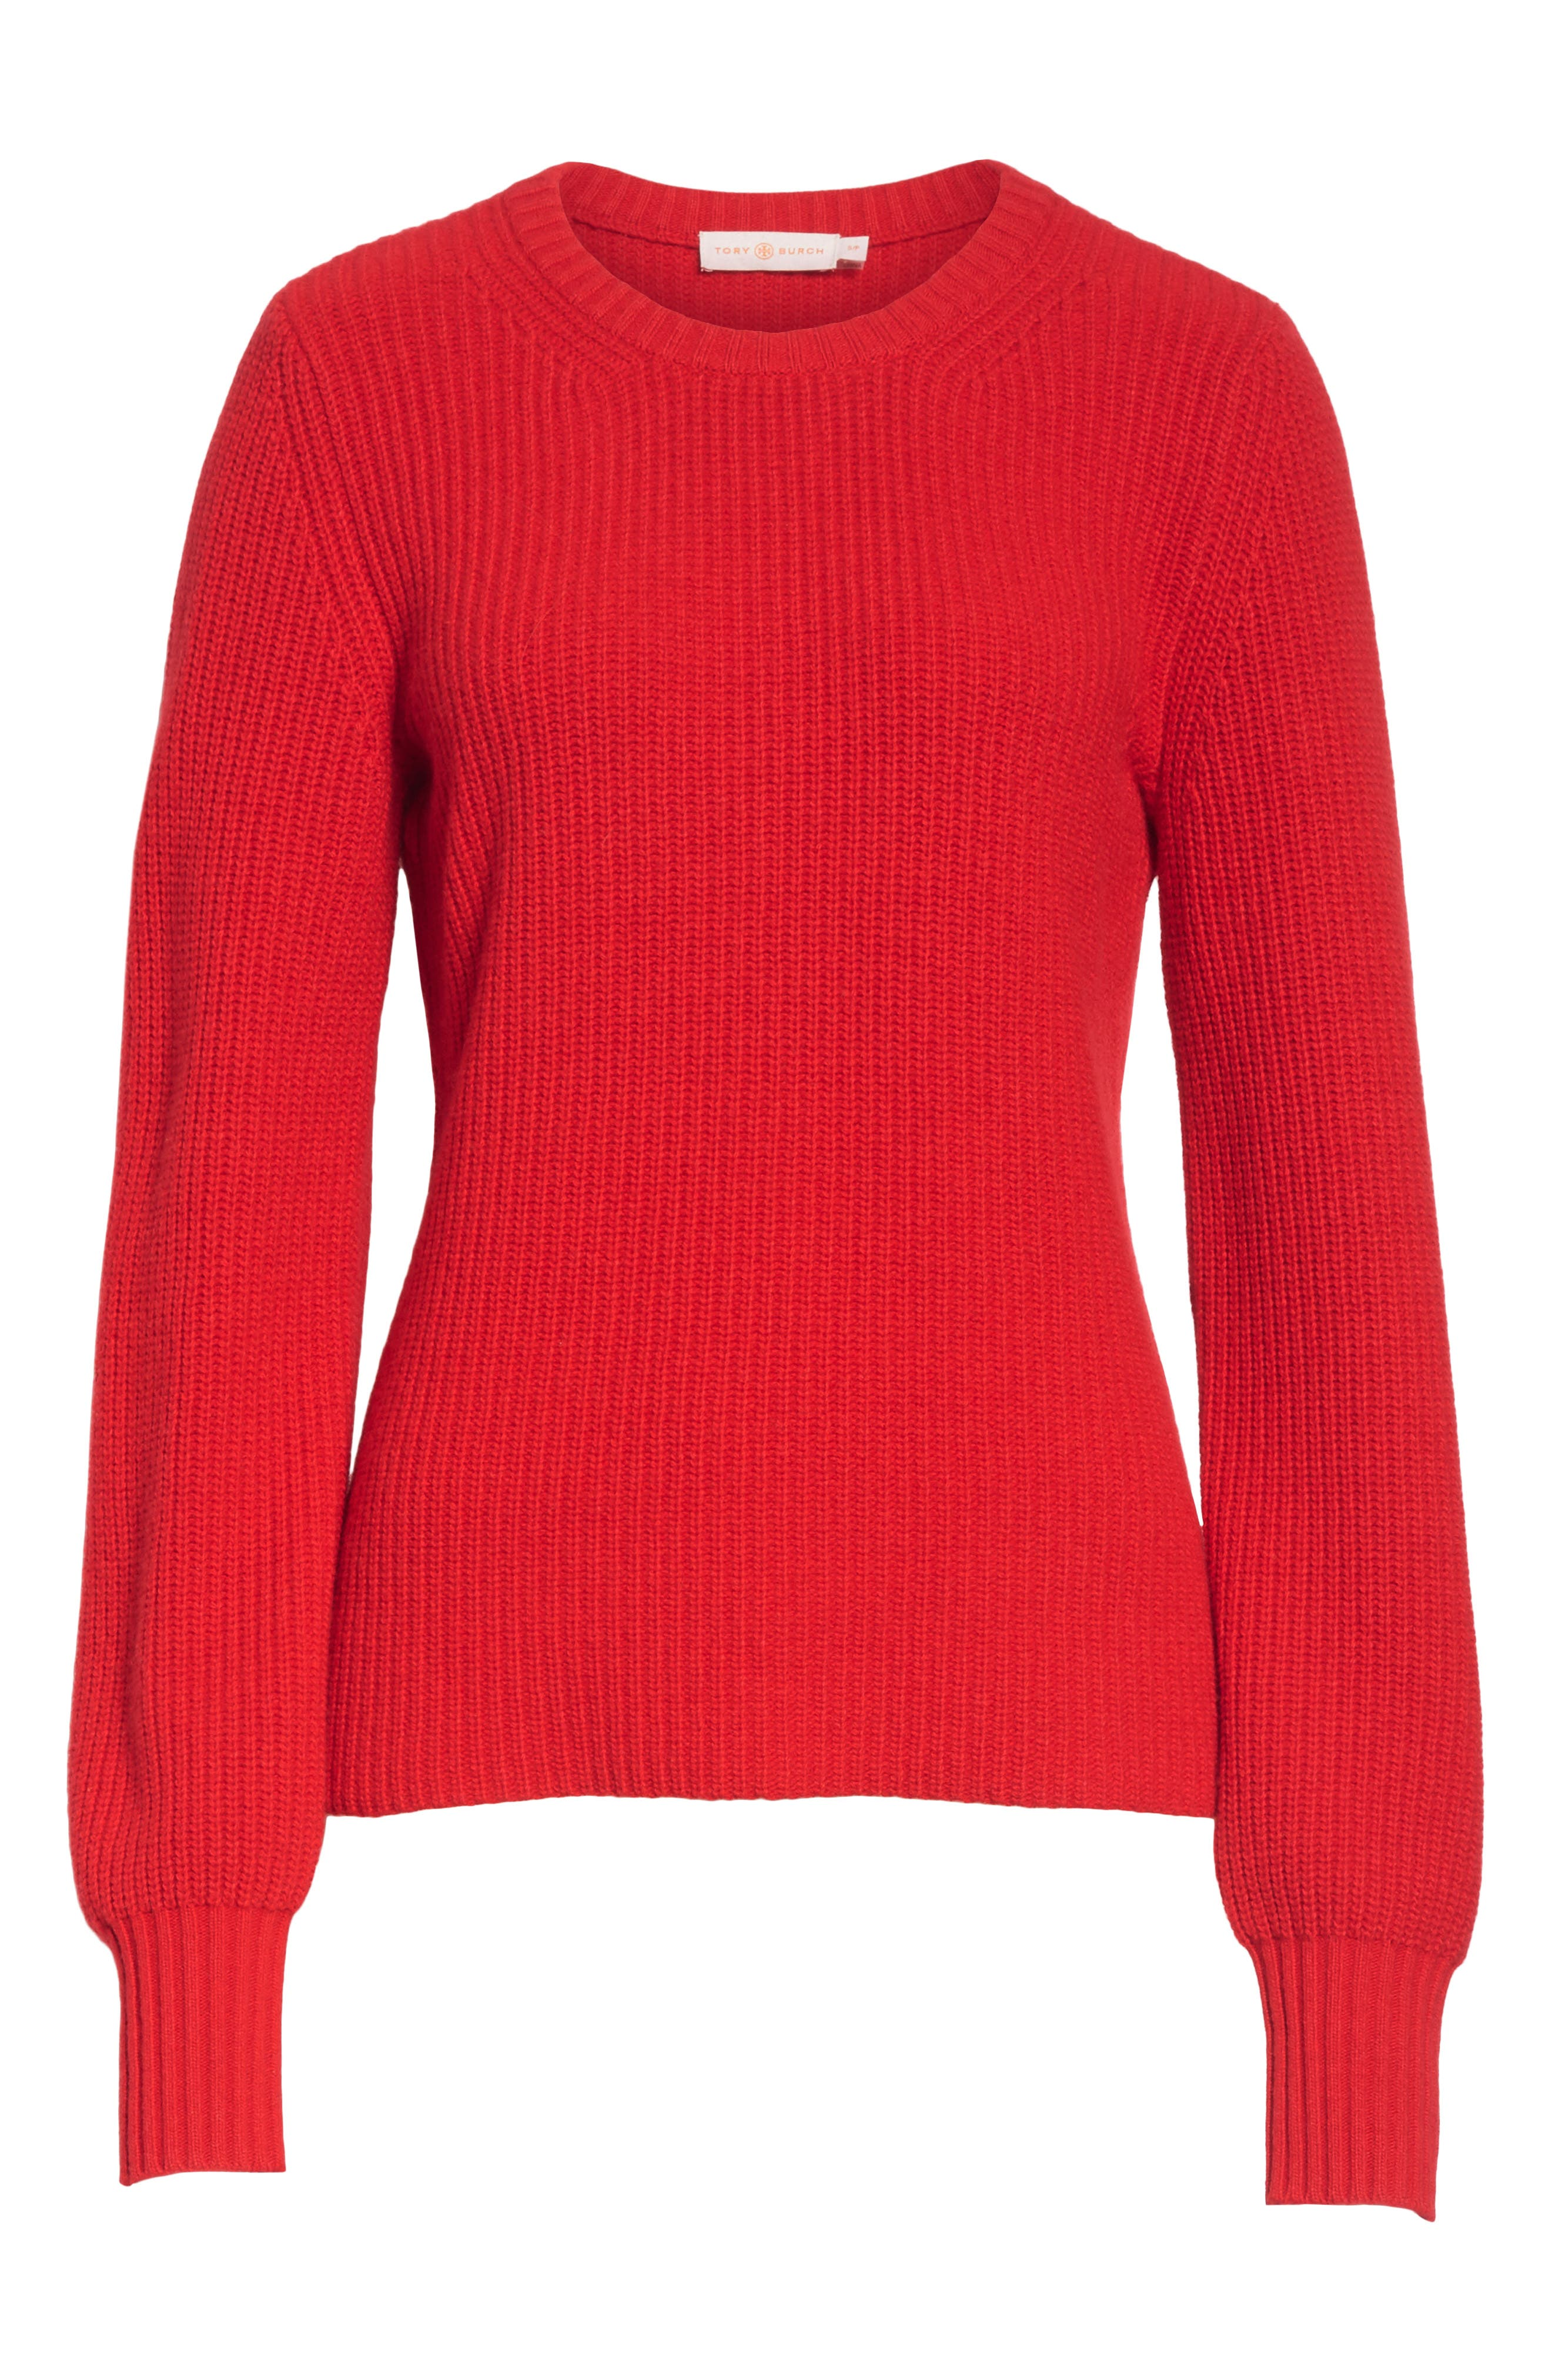 Kennedy Shaker Stitch Sweater,                             Alternate thumbnail 6, color,                             TRUE RED